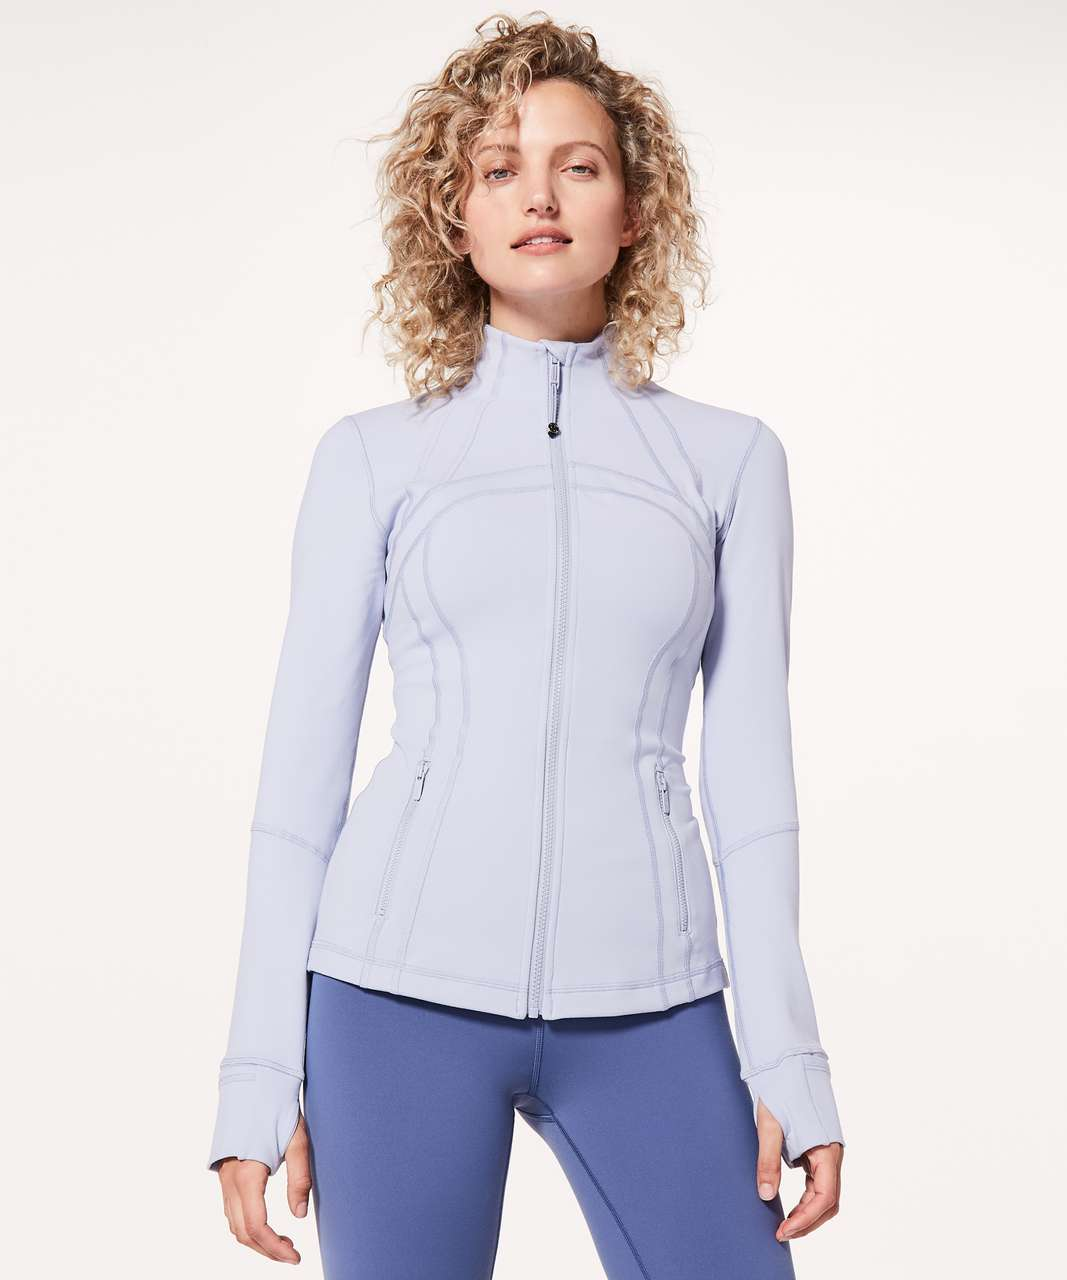 Lululemon Define Jacket - Berry Mist